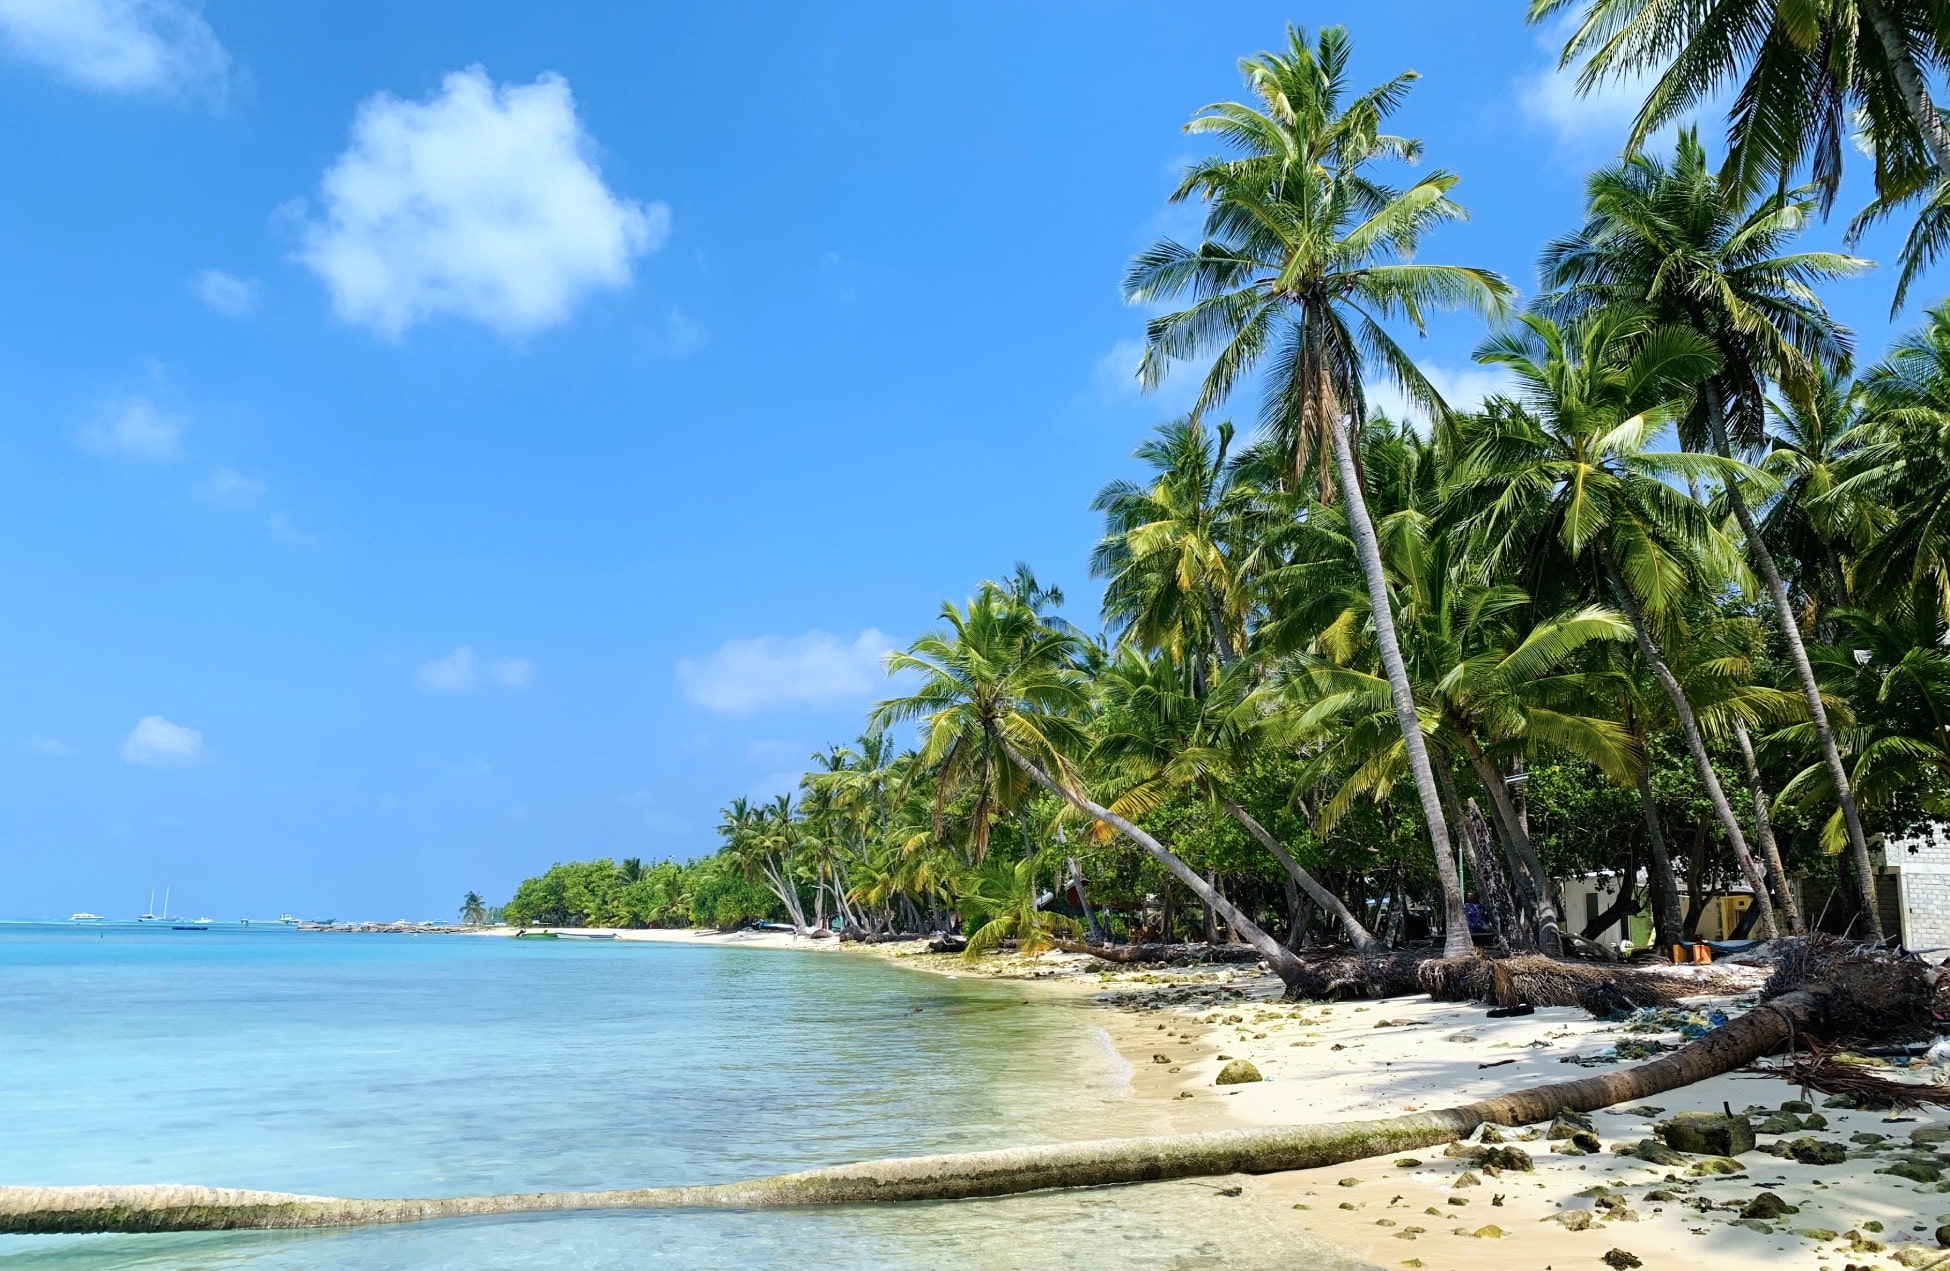 Dhiffushi maldives beach sea palm trees paradise sun